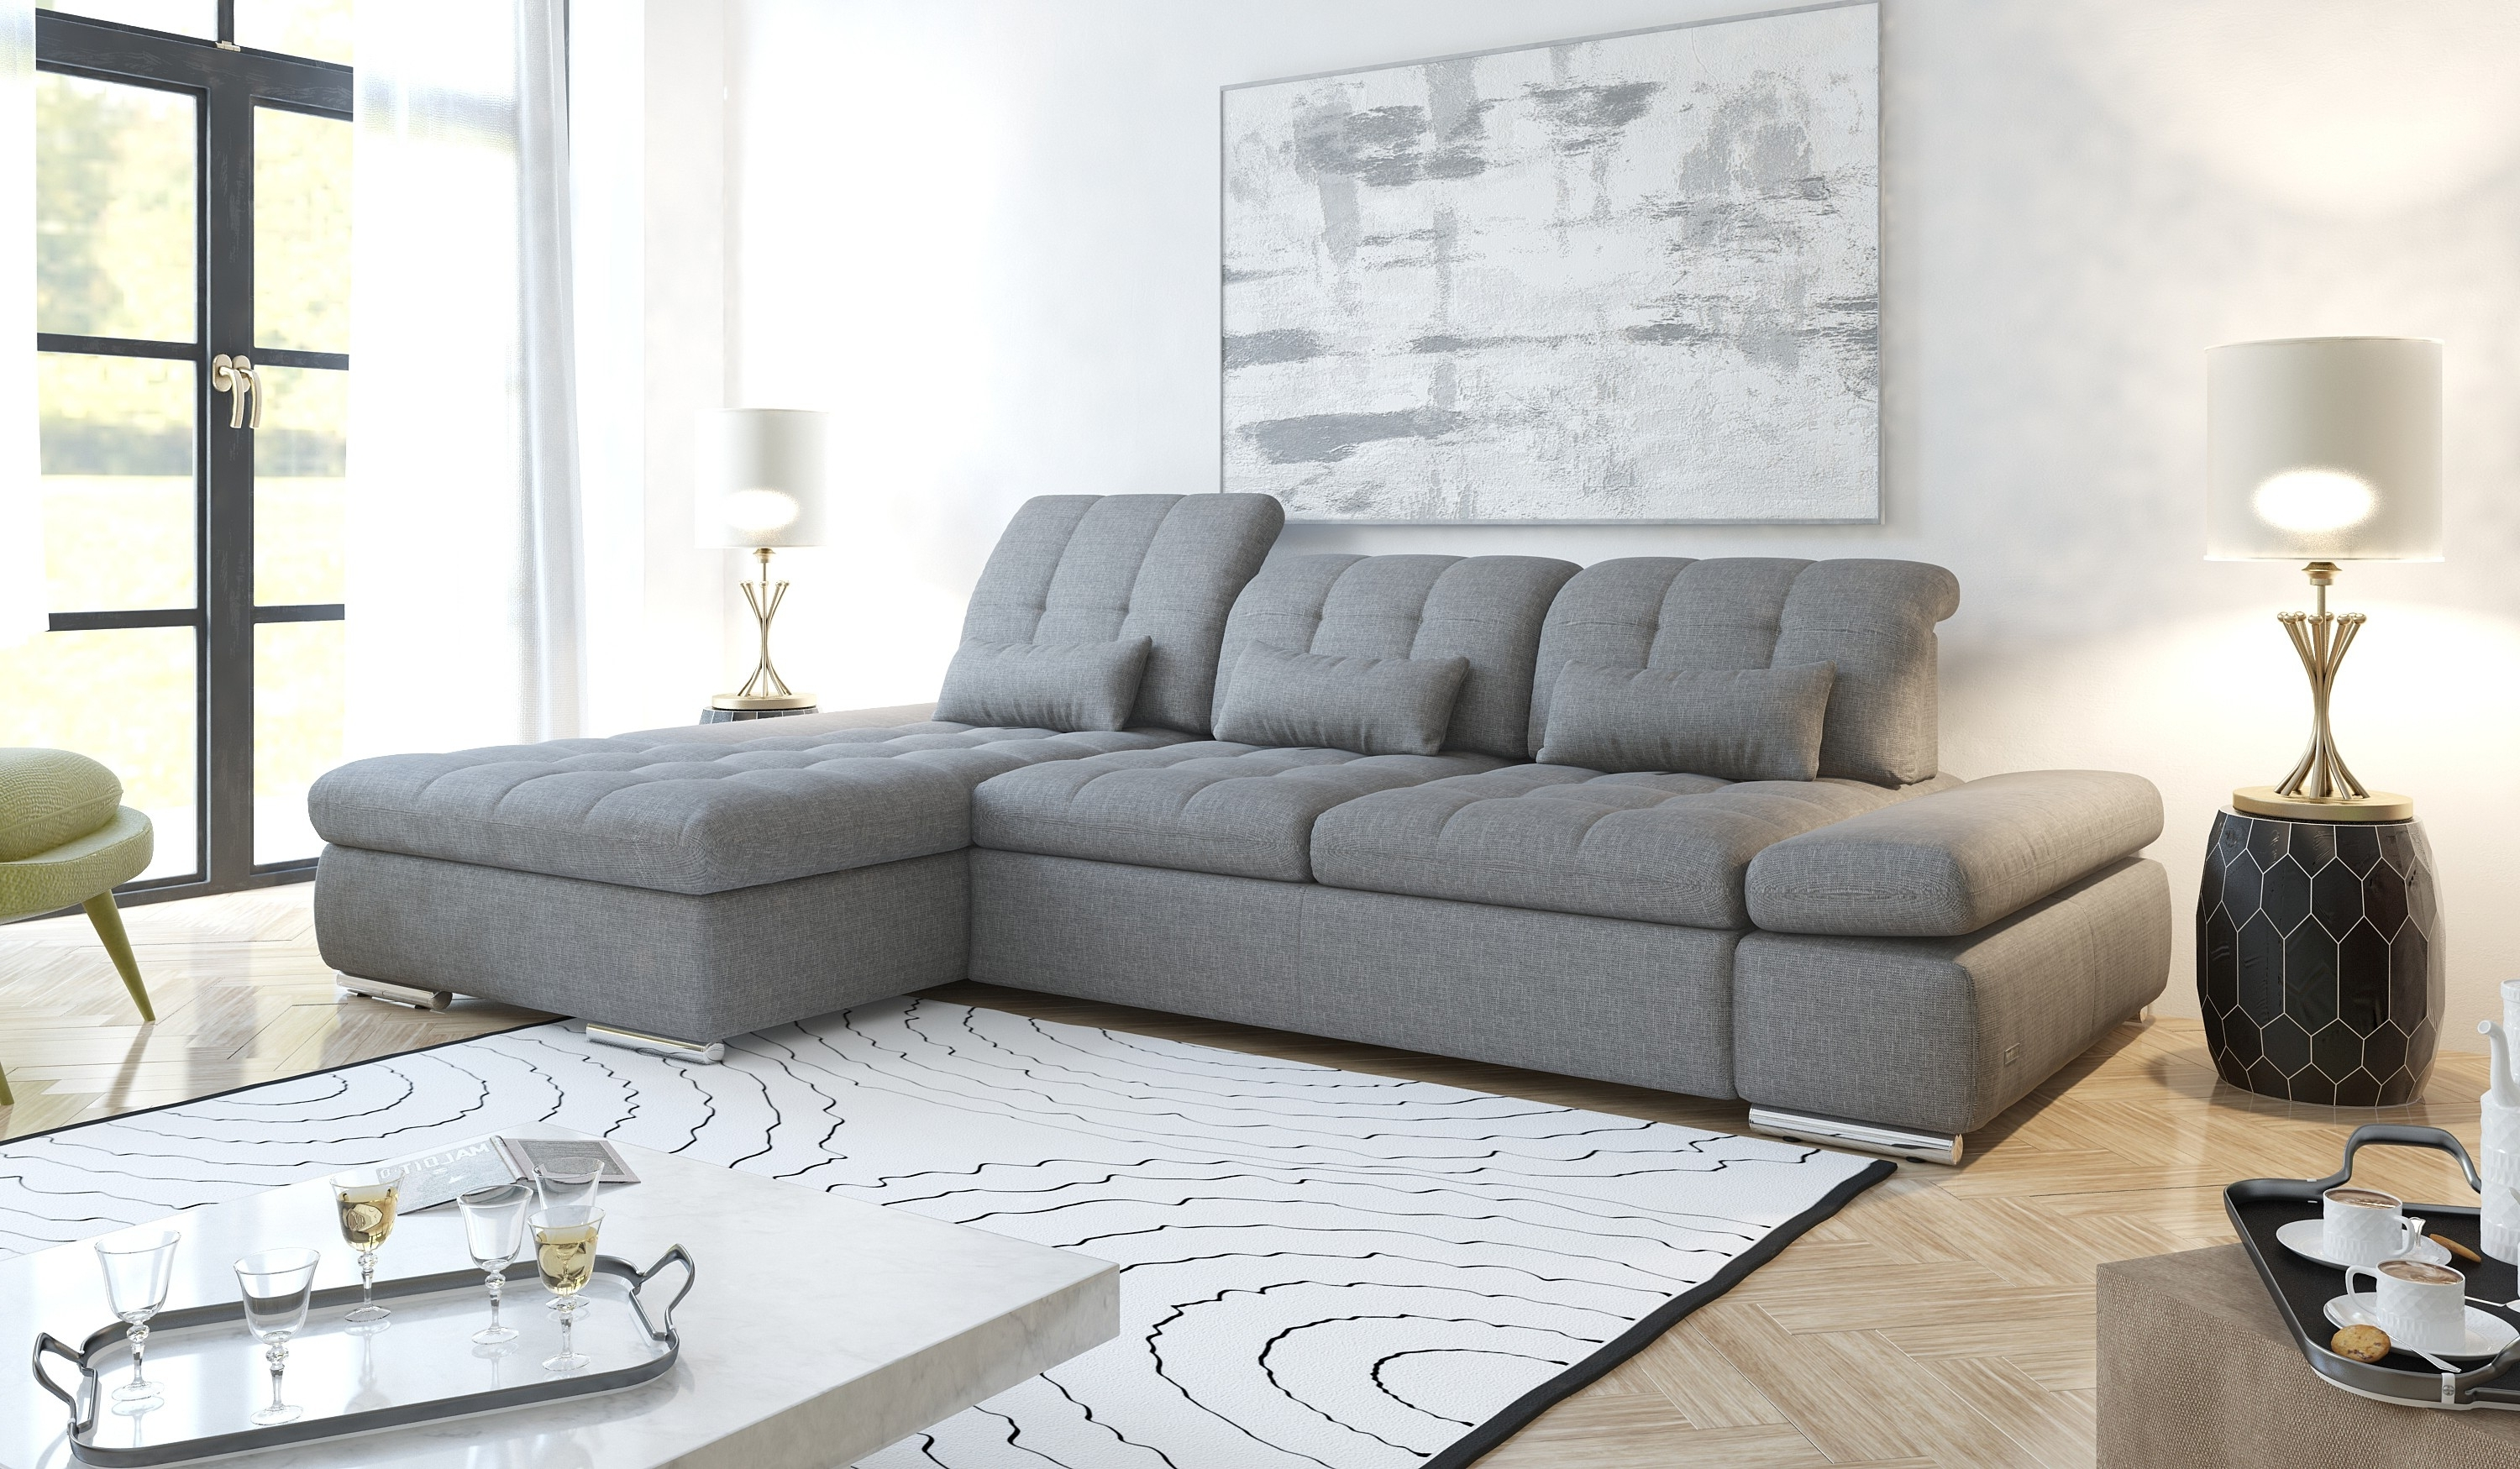 Alpine Sectional Sofa With Regard To Trendy Trinidad And Tobago Sectional Sofas (View 2 of 20)